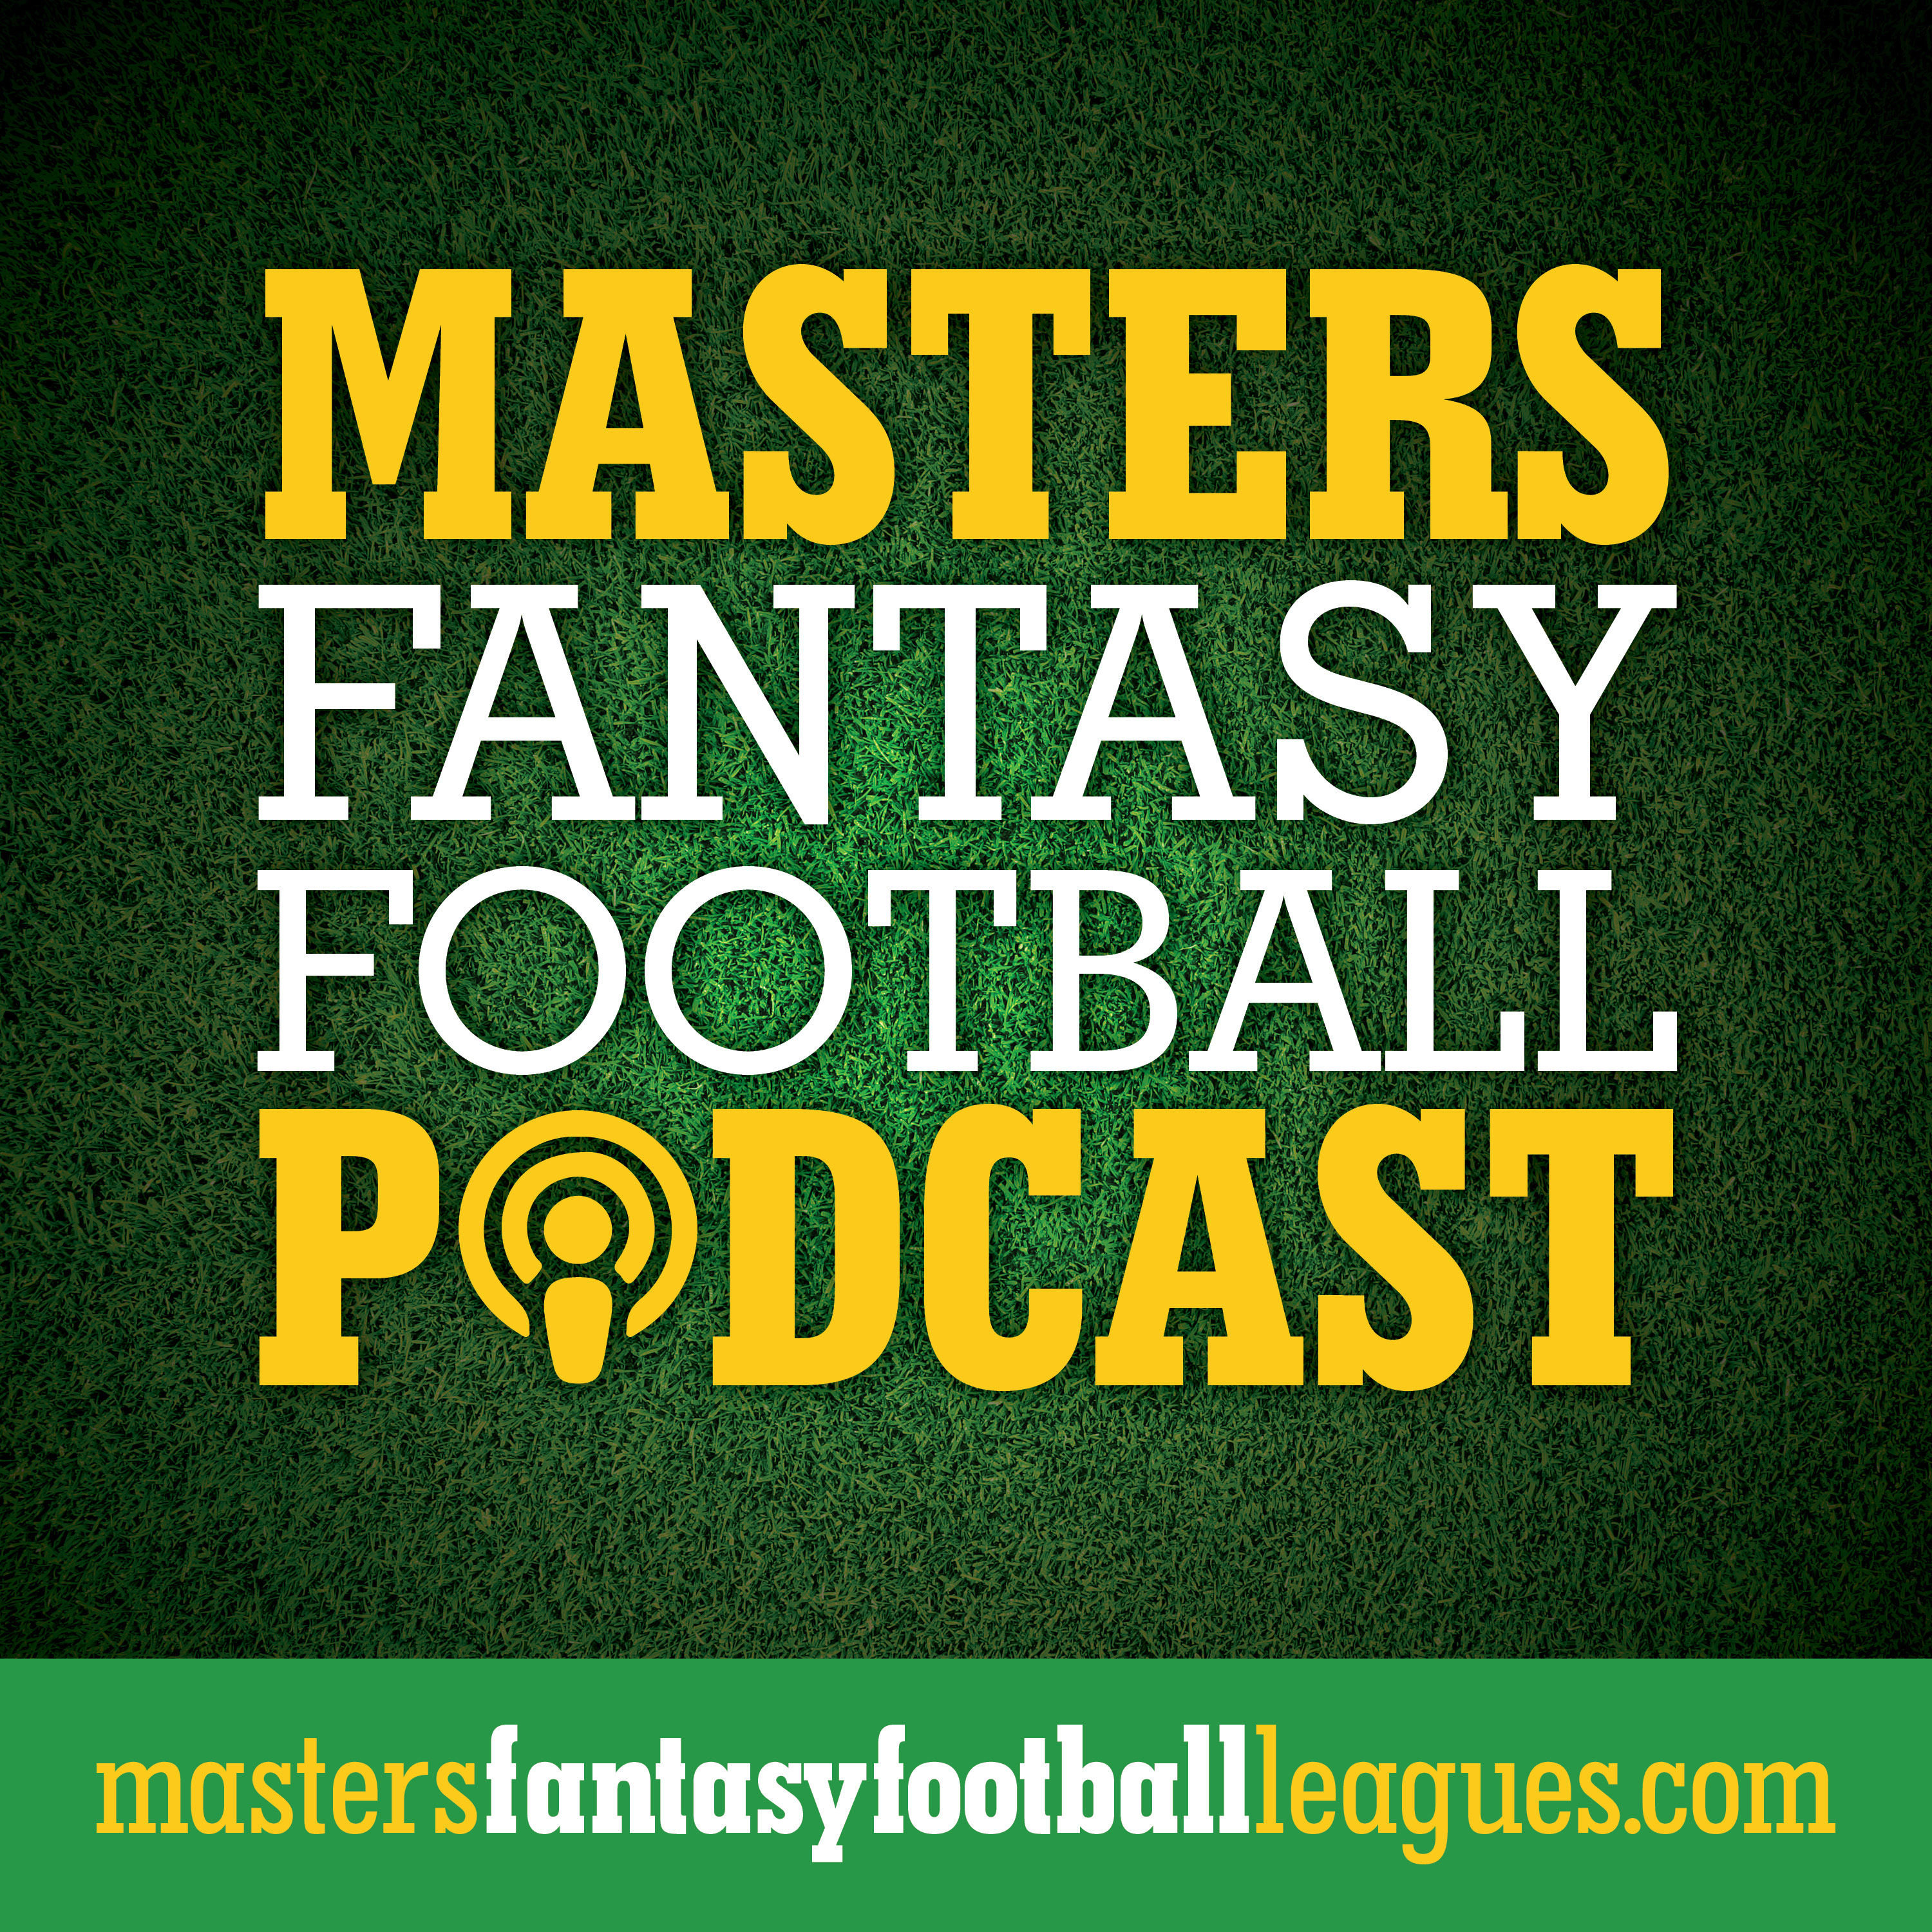 Masters Fantasy Football Podcast: 3 Breakout RBs in Dynasty football to BUY NOW!